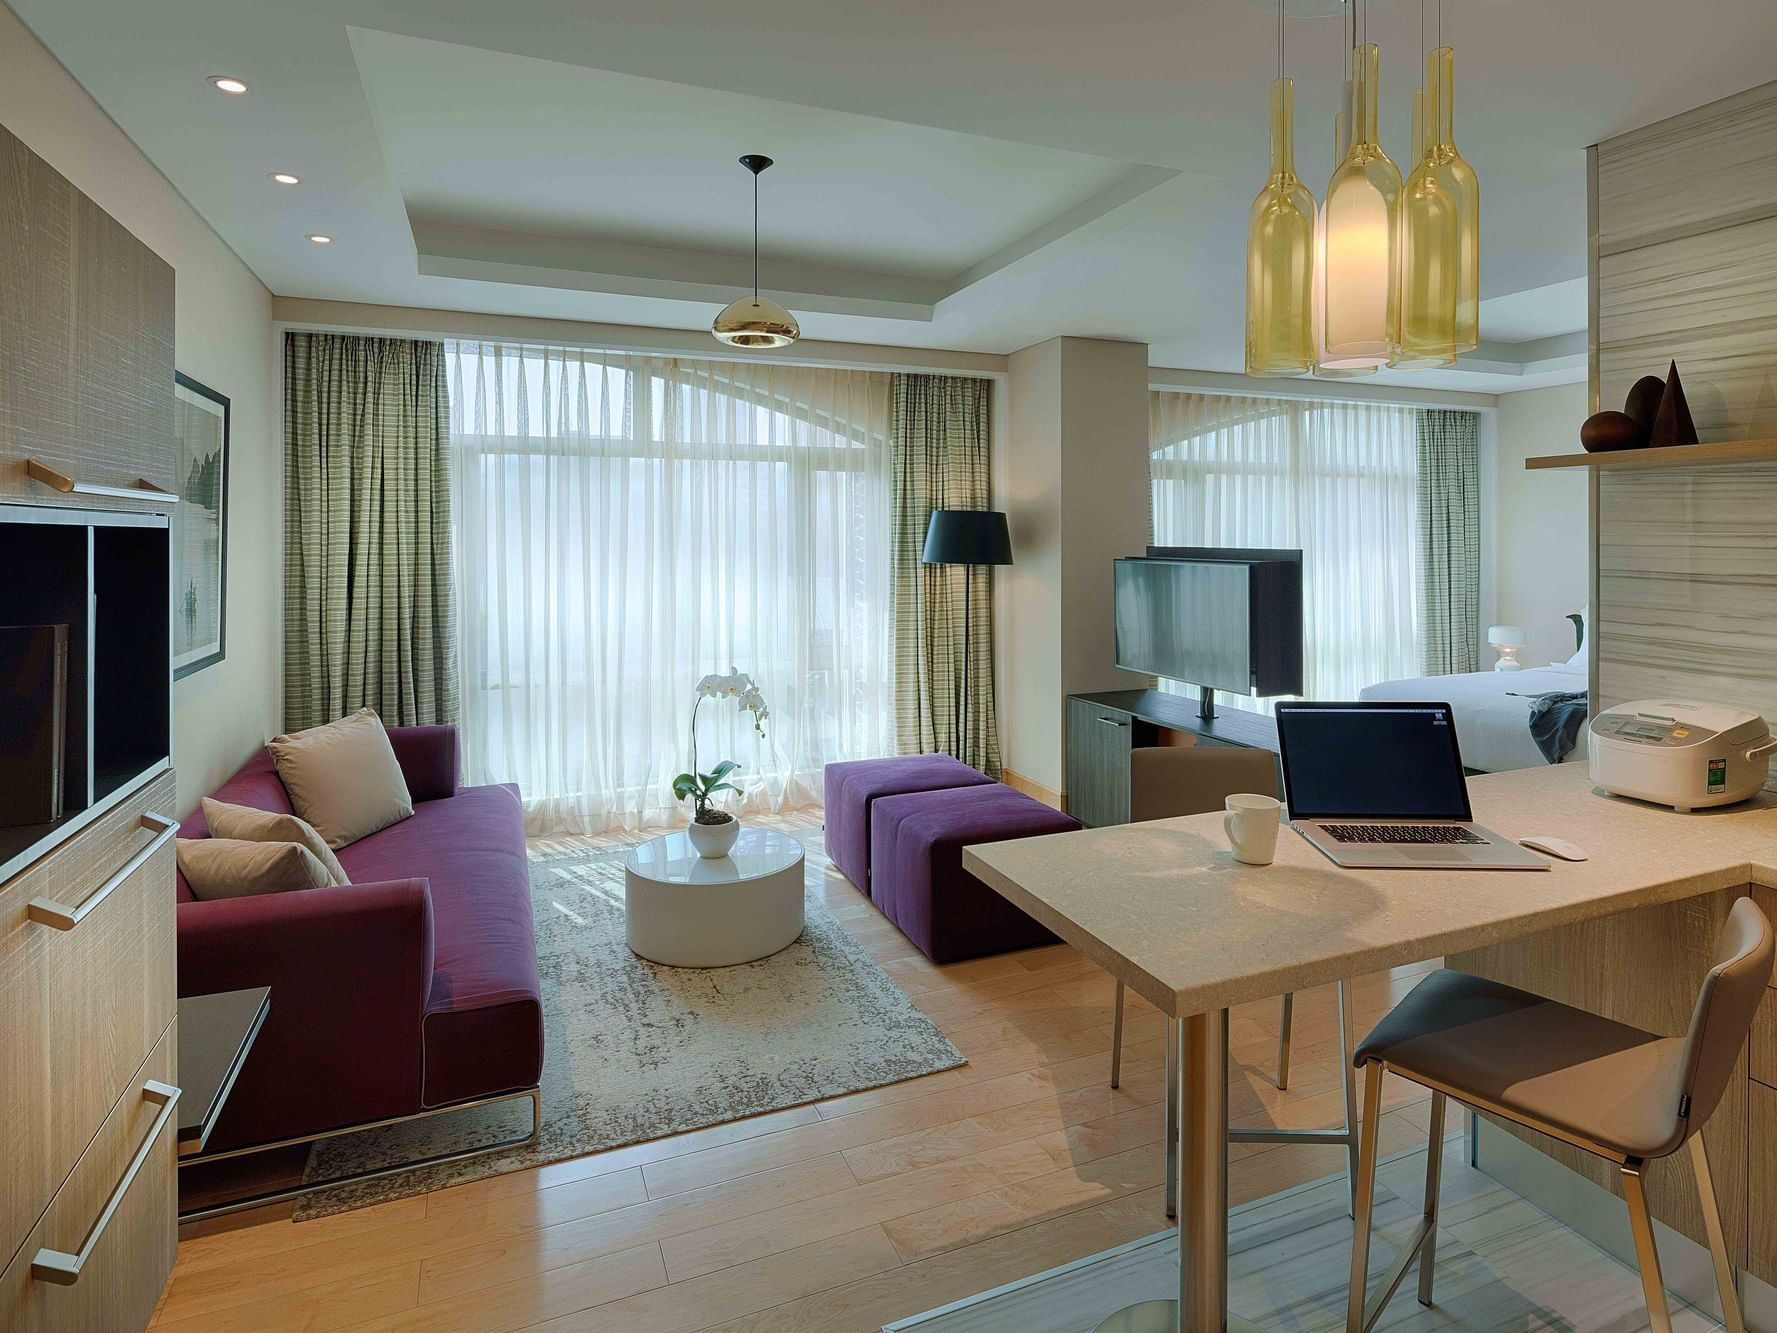 spacious living area with sofa, dining area, and coffee table